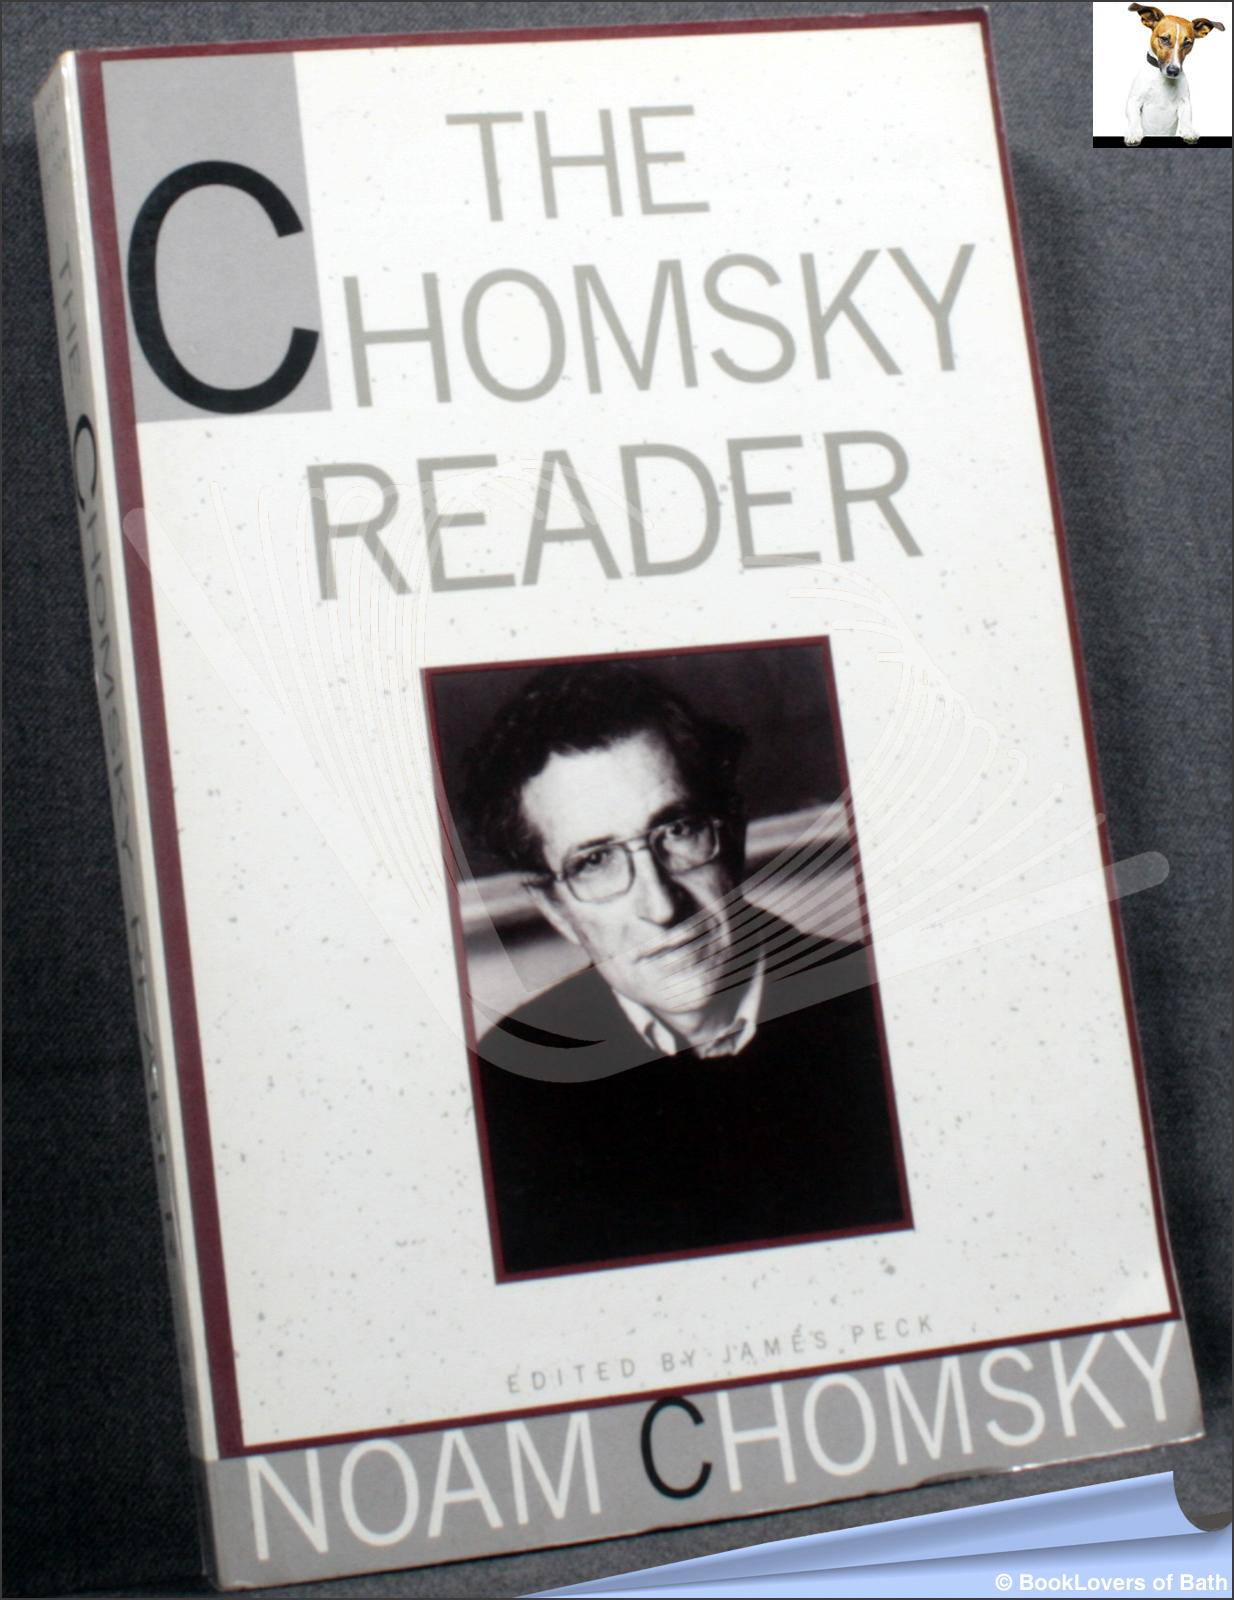 The Chomsky Reader - Noam Chomsky